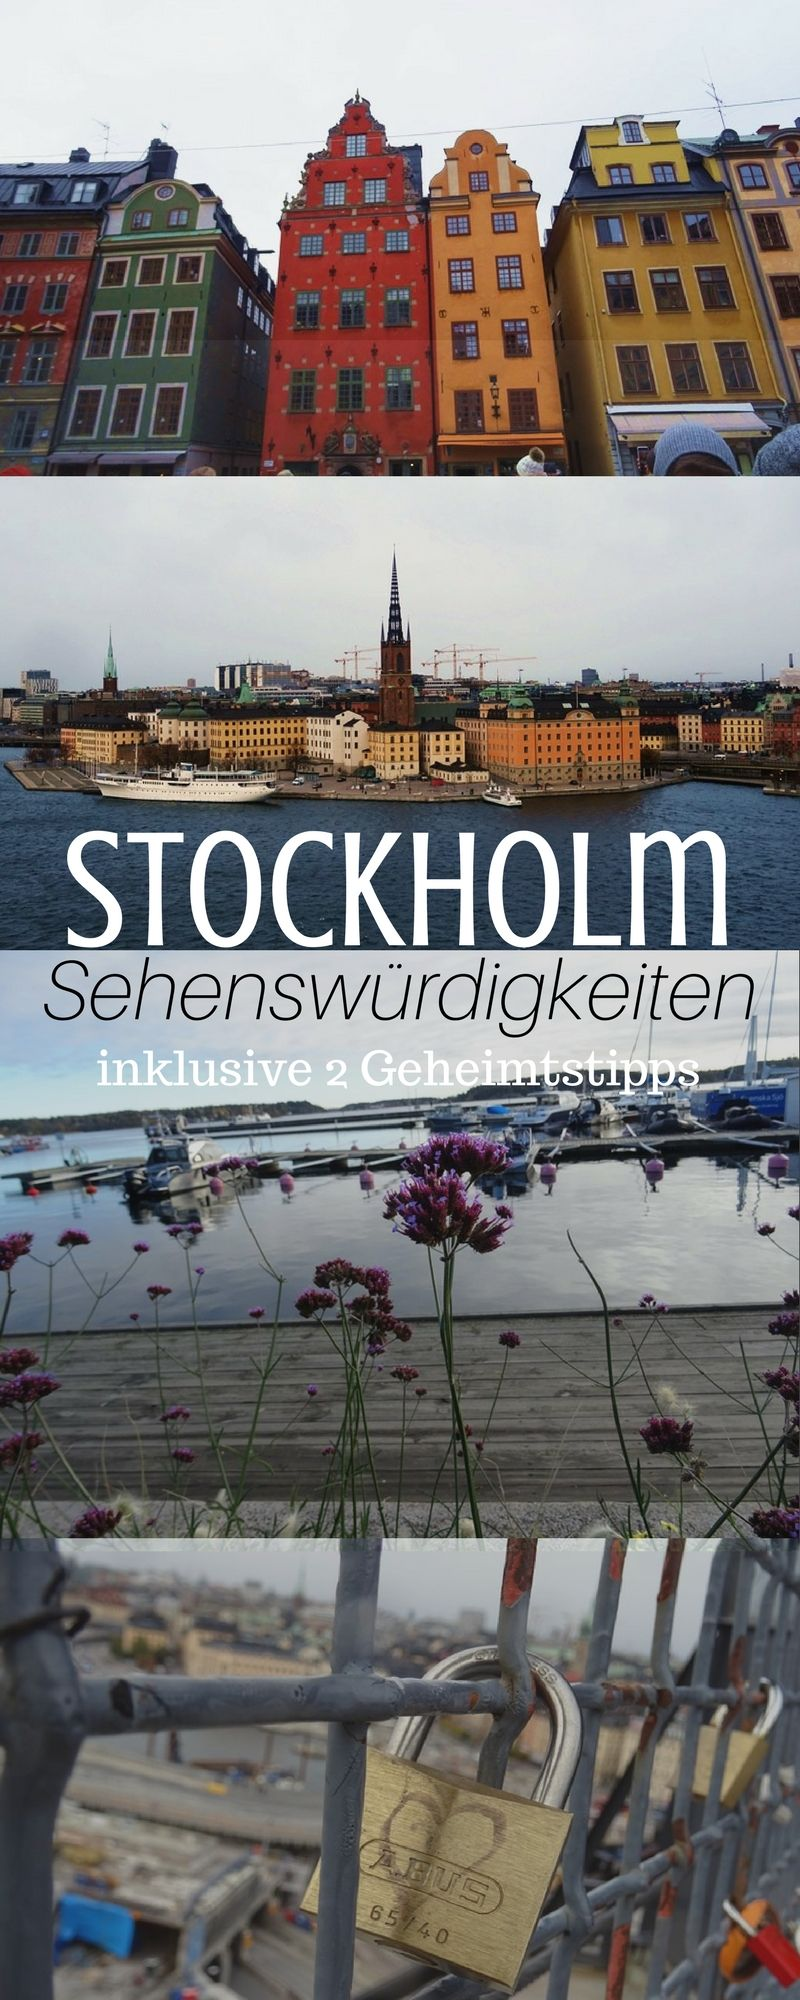 reisetipps stockholm inklusive geheimtipps travel reisen stockholm reise schweden reise. Black Bedroom Furniture Sets. Home Design Ideas